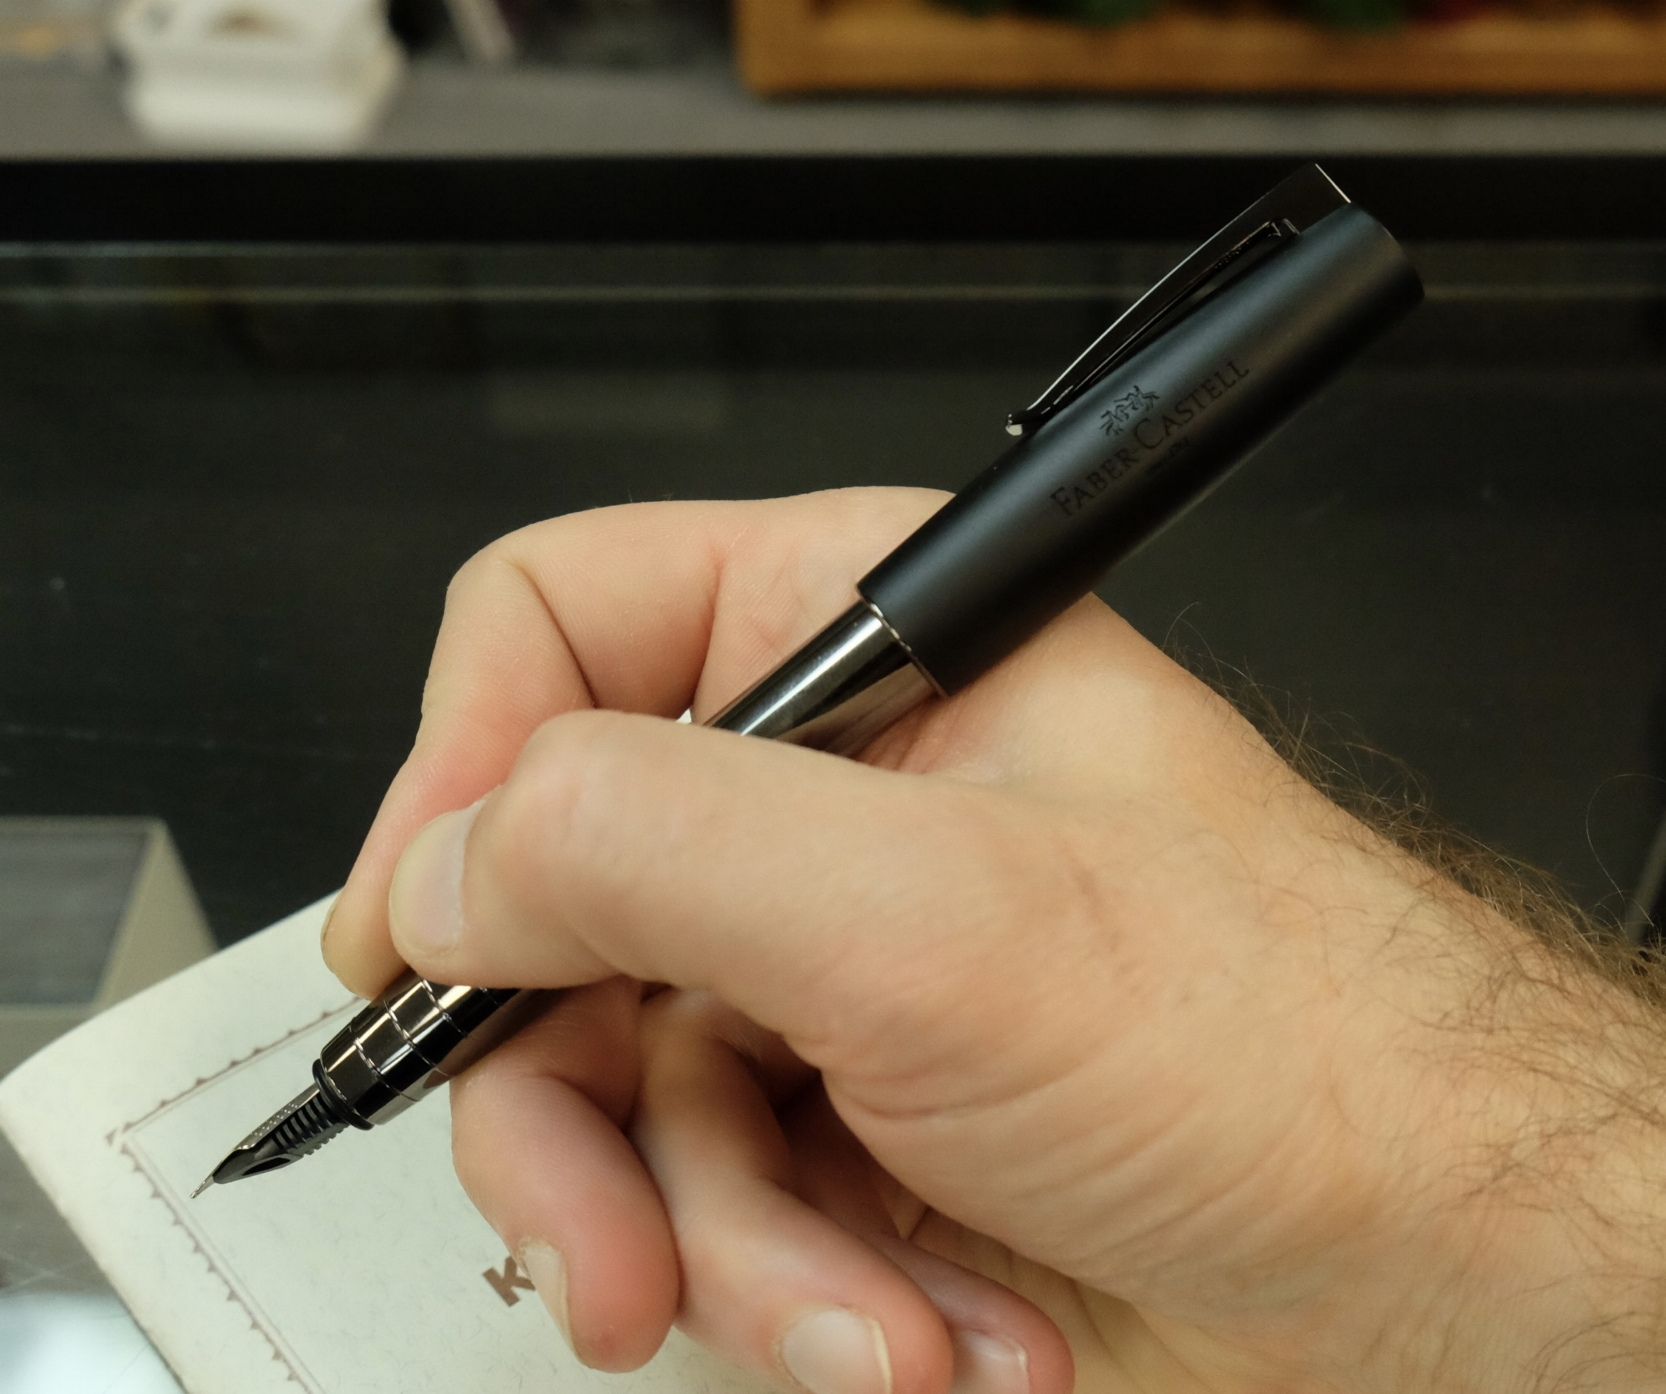 The Shiny Gunmetal version, which I demoed in-store at Vanness. The pen sits nicely in the hand, and is a great length.